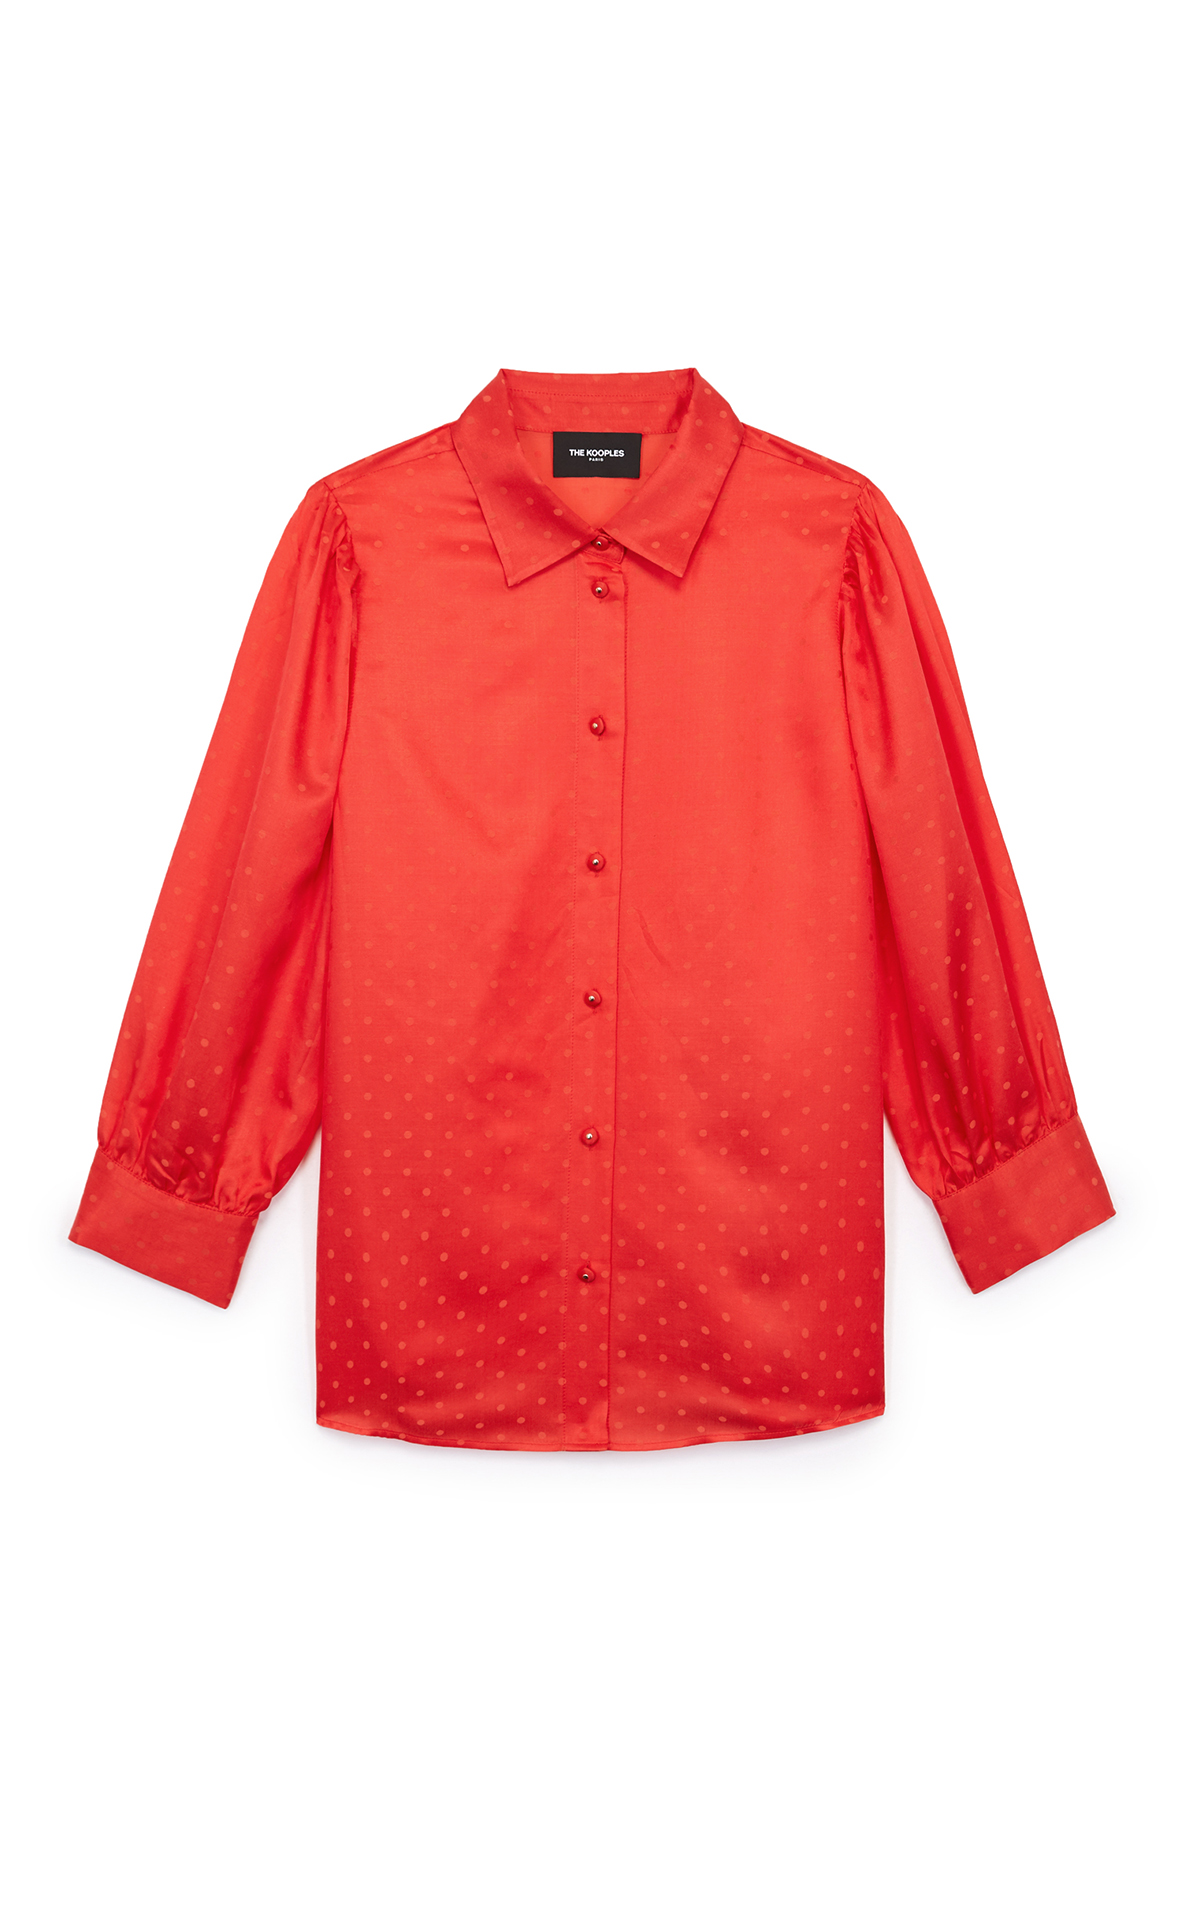 Red shirt The Kooples